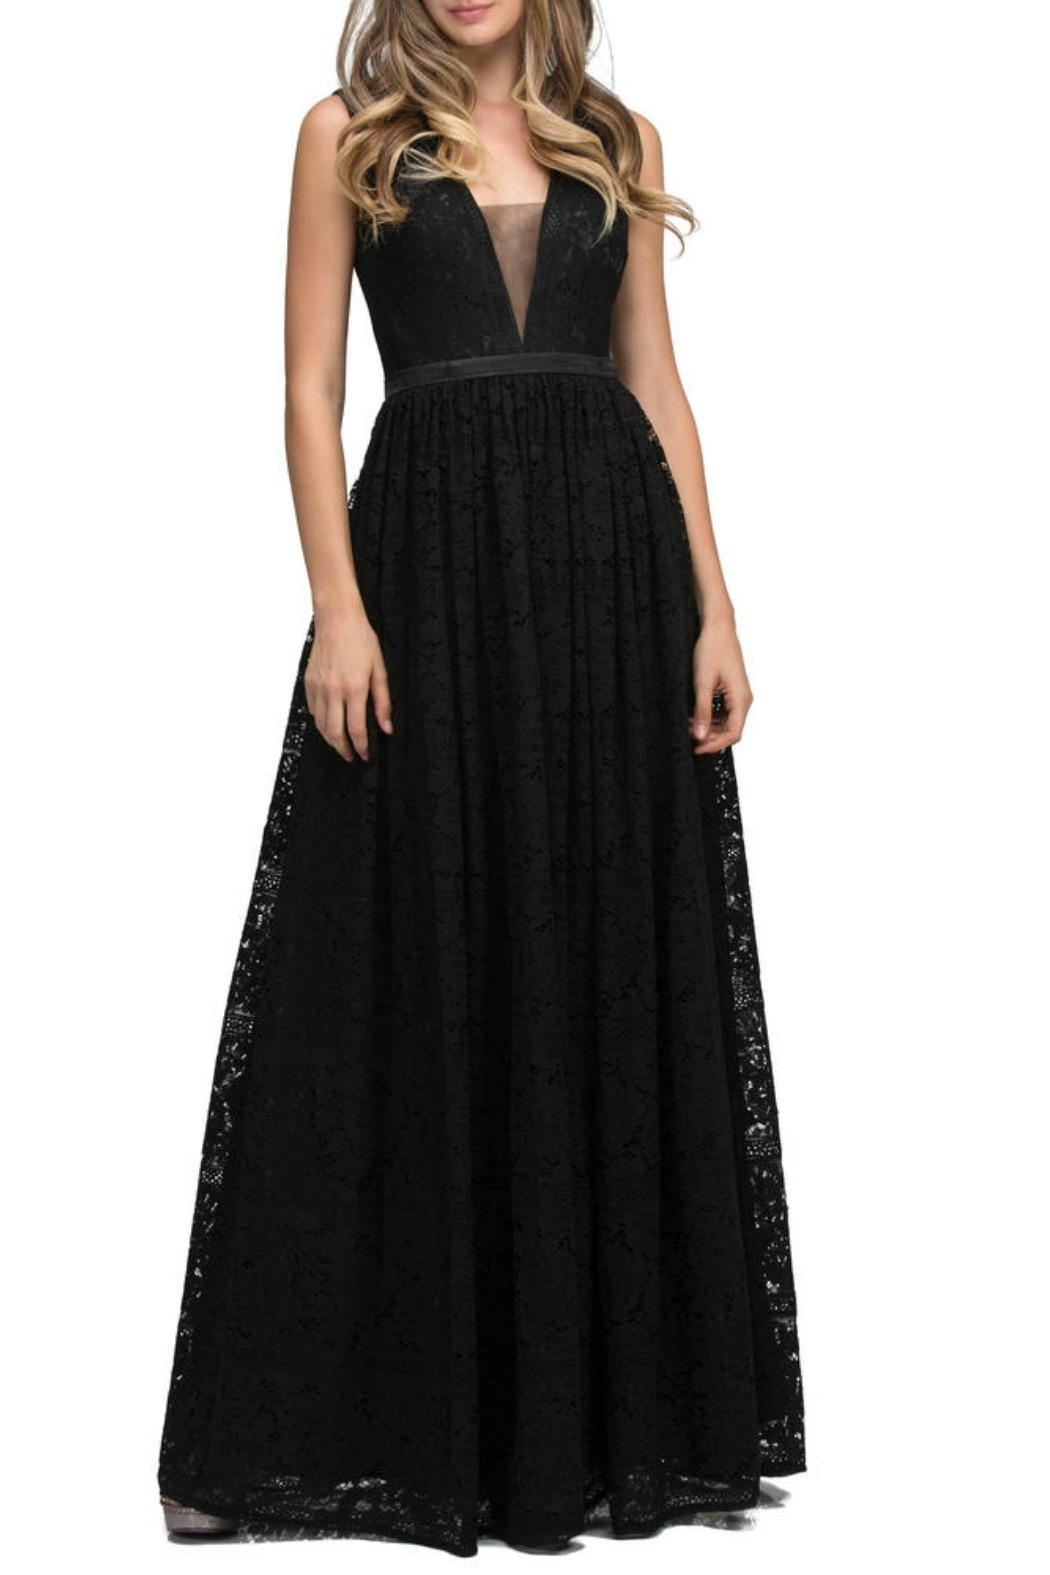 Lucci Lu Lace Empire Gown - Front Cropped Image